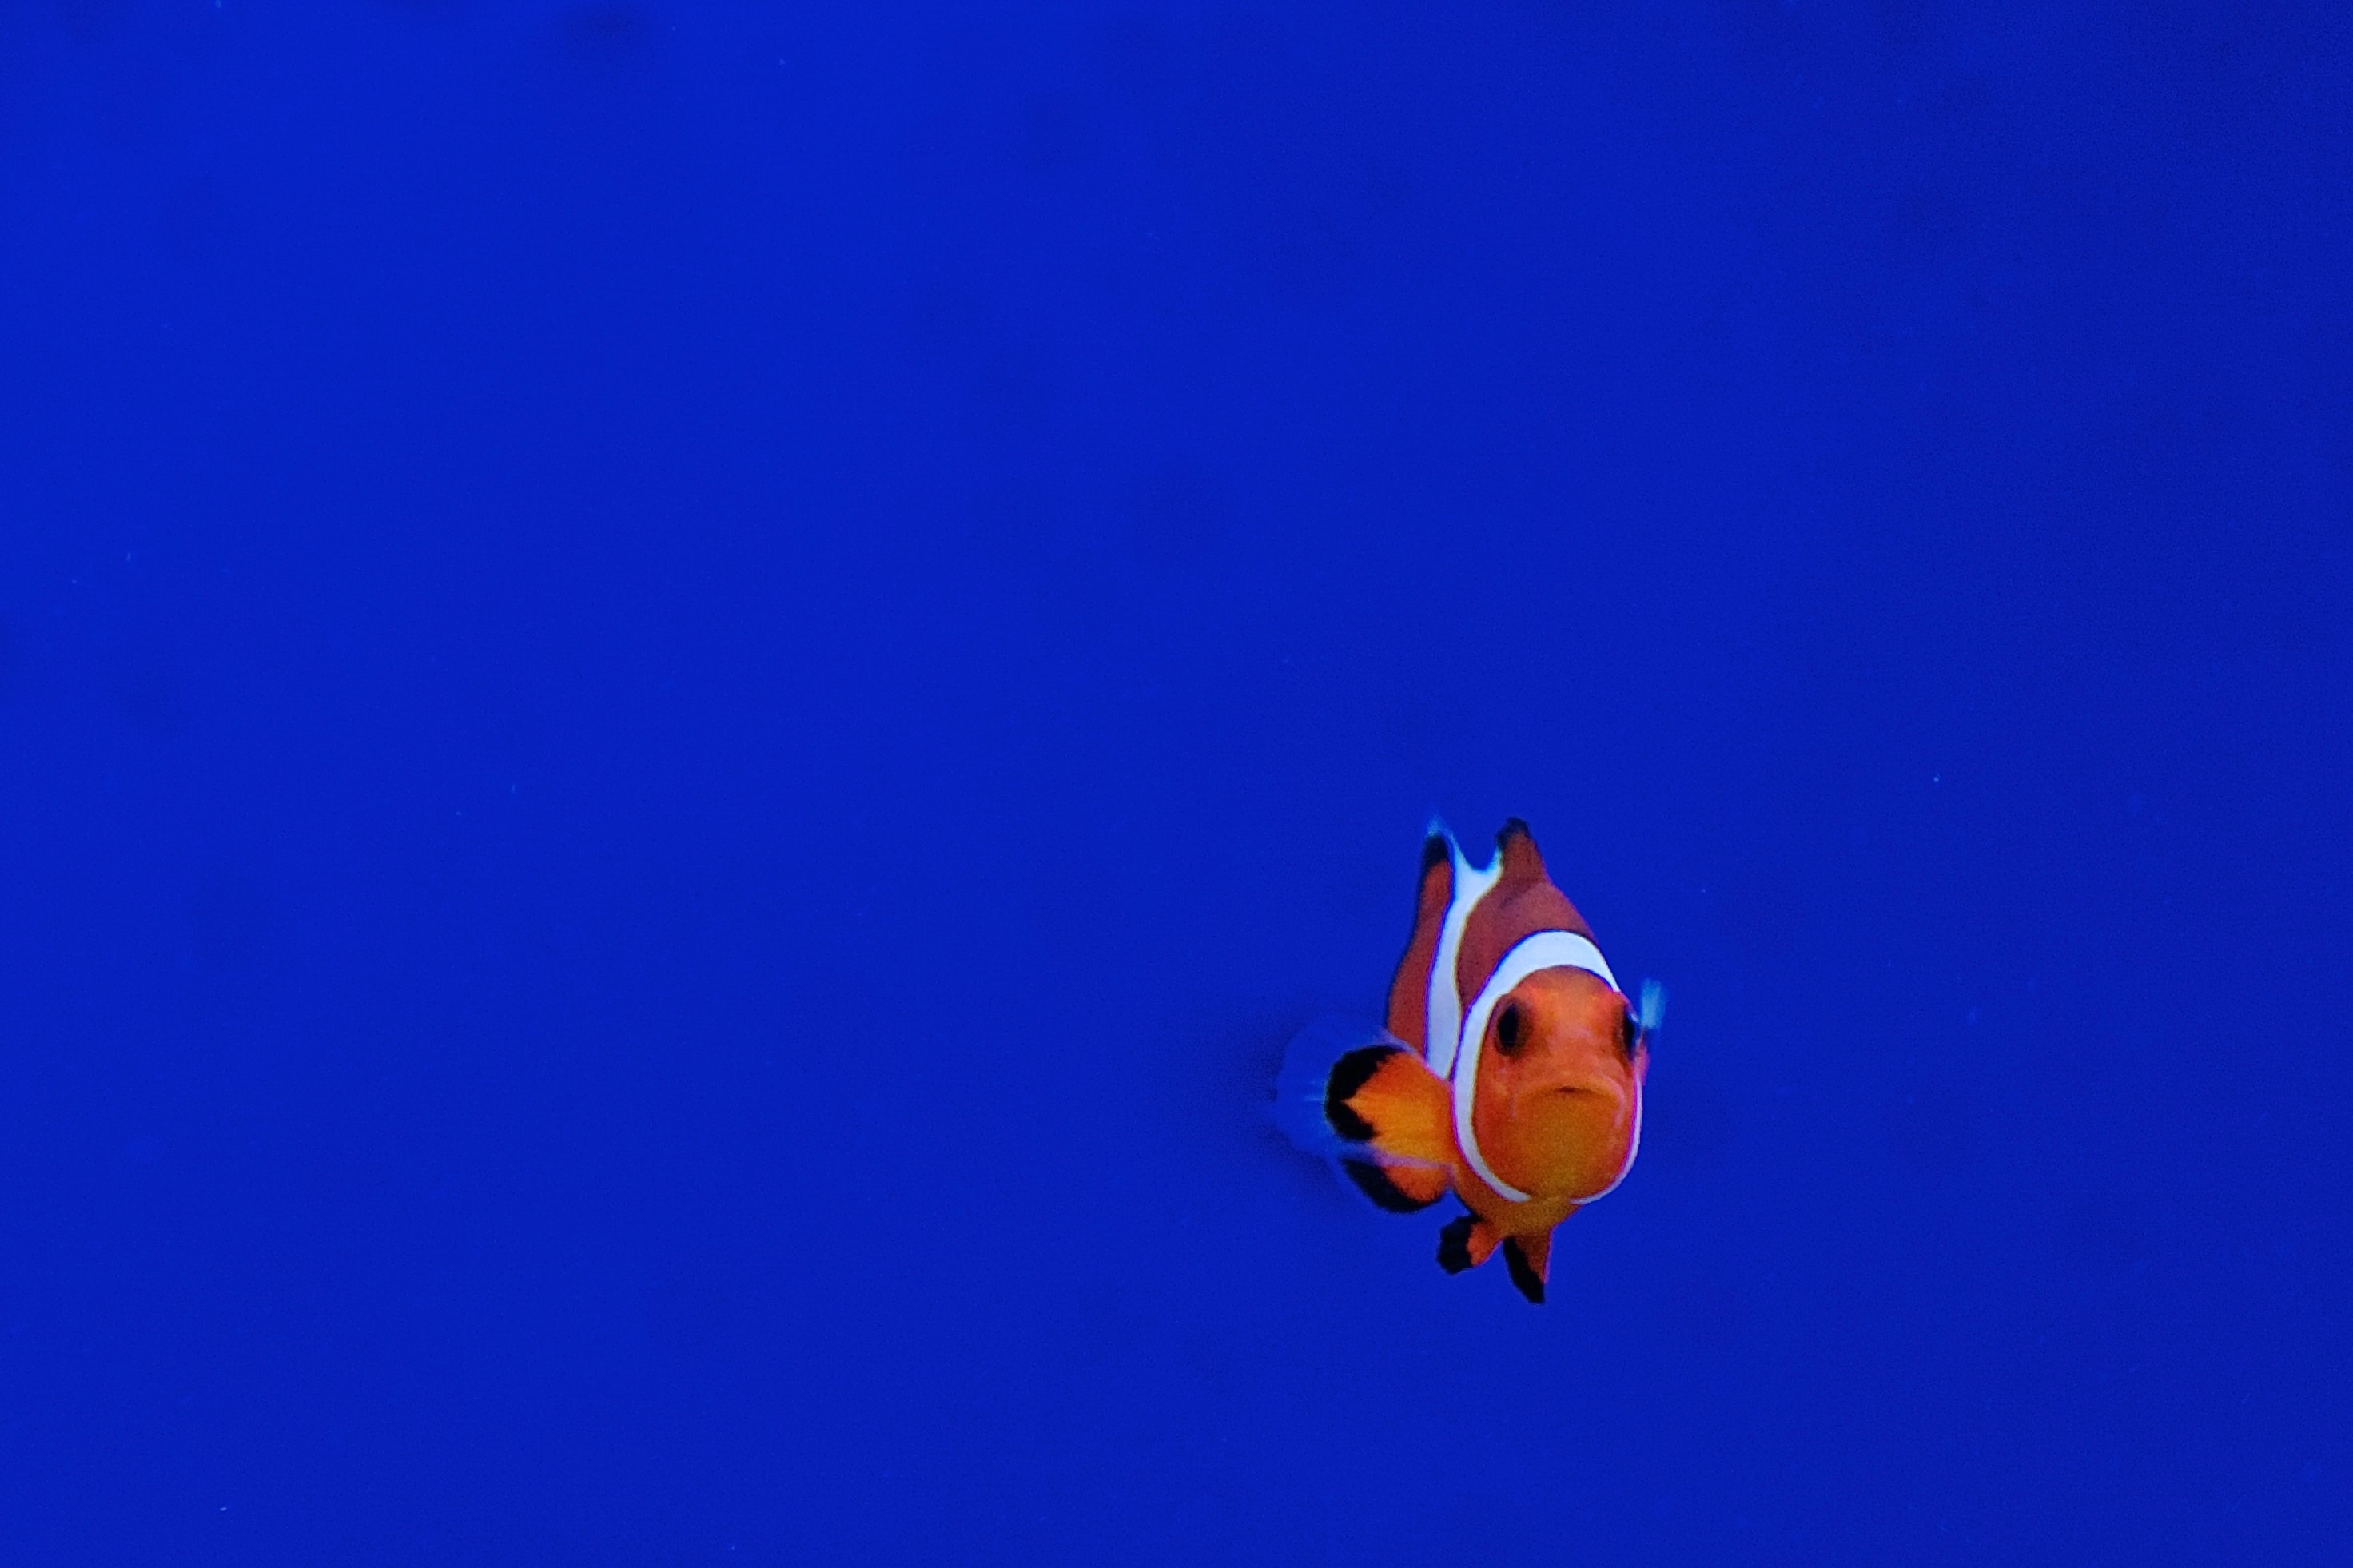 clown fish swimming in water